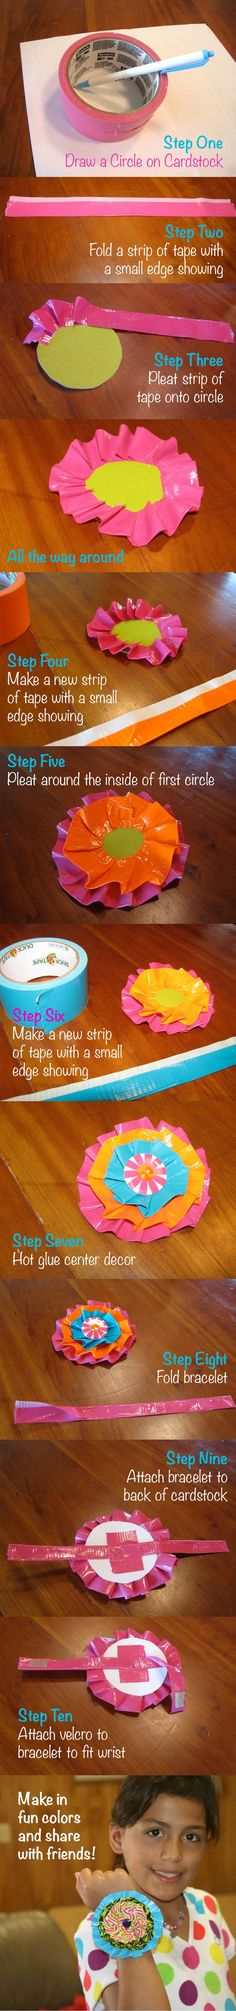 cool Make one, Share one. Duct Tape Flower Bracelet- Adapted from duct tape book Craz...